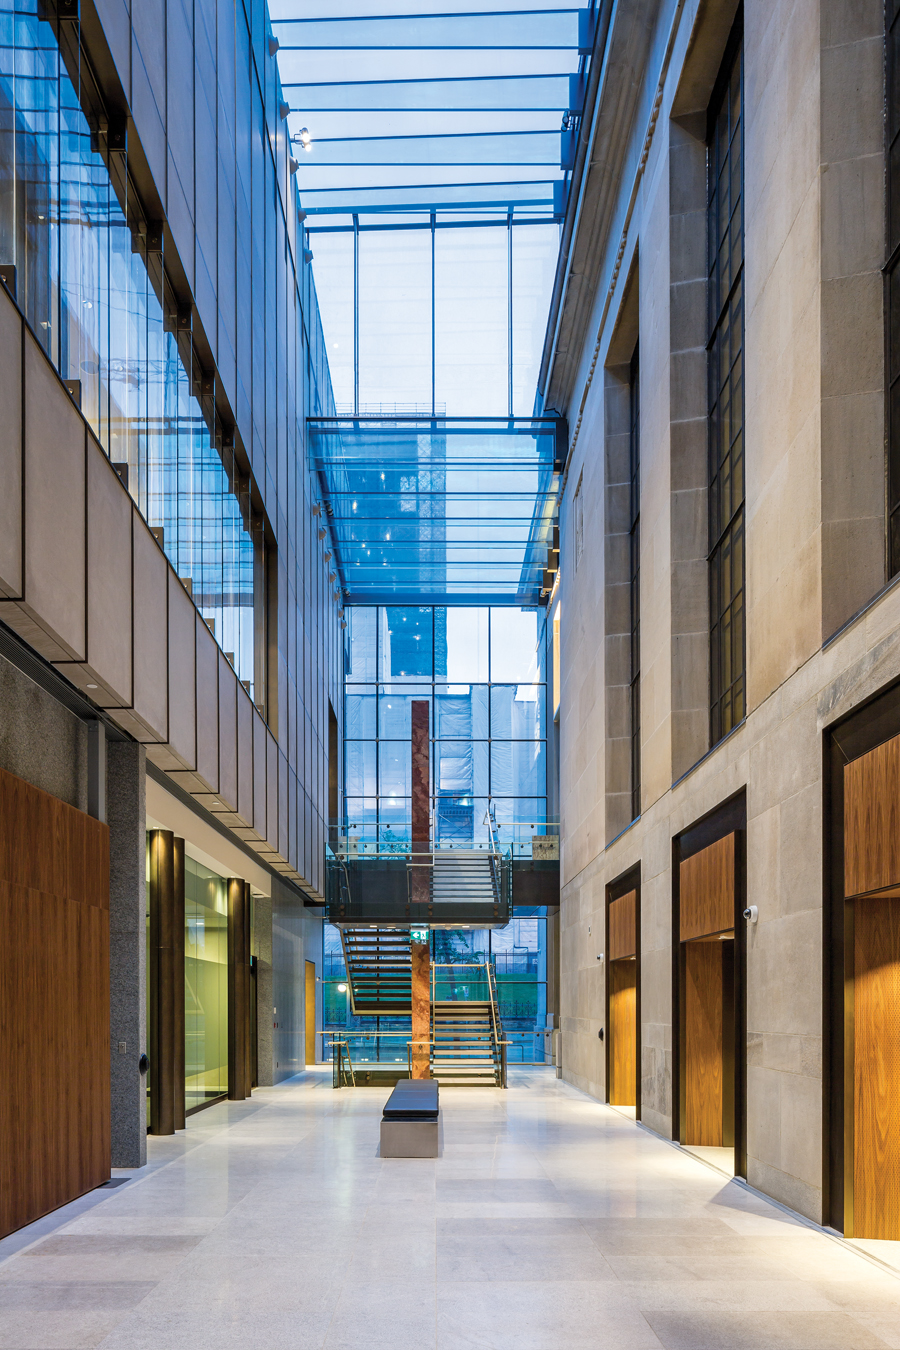 The fully glazed atrium connects the historic banking hall to a contemporary addition. Conceived as a second stone box, the addition includes a granite base topped by limestone above, set out in a modular pattern with bronze inlaid joints.